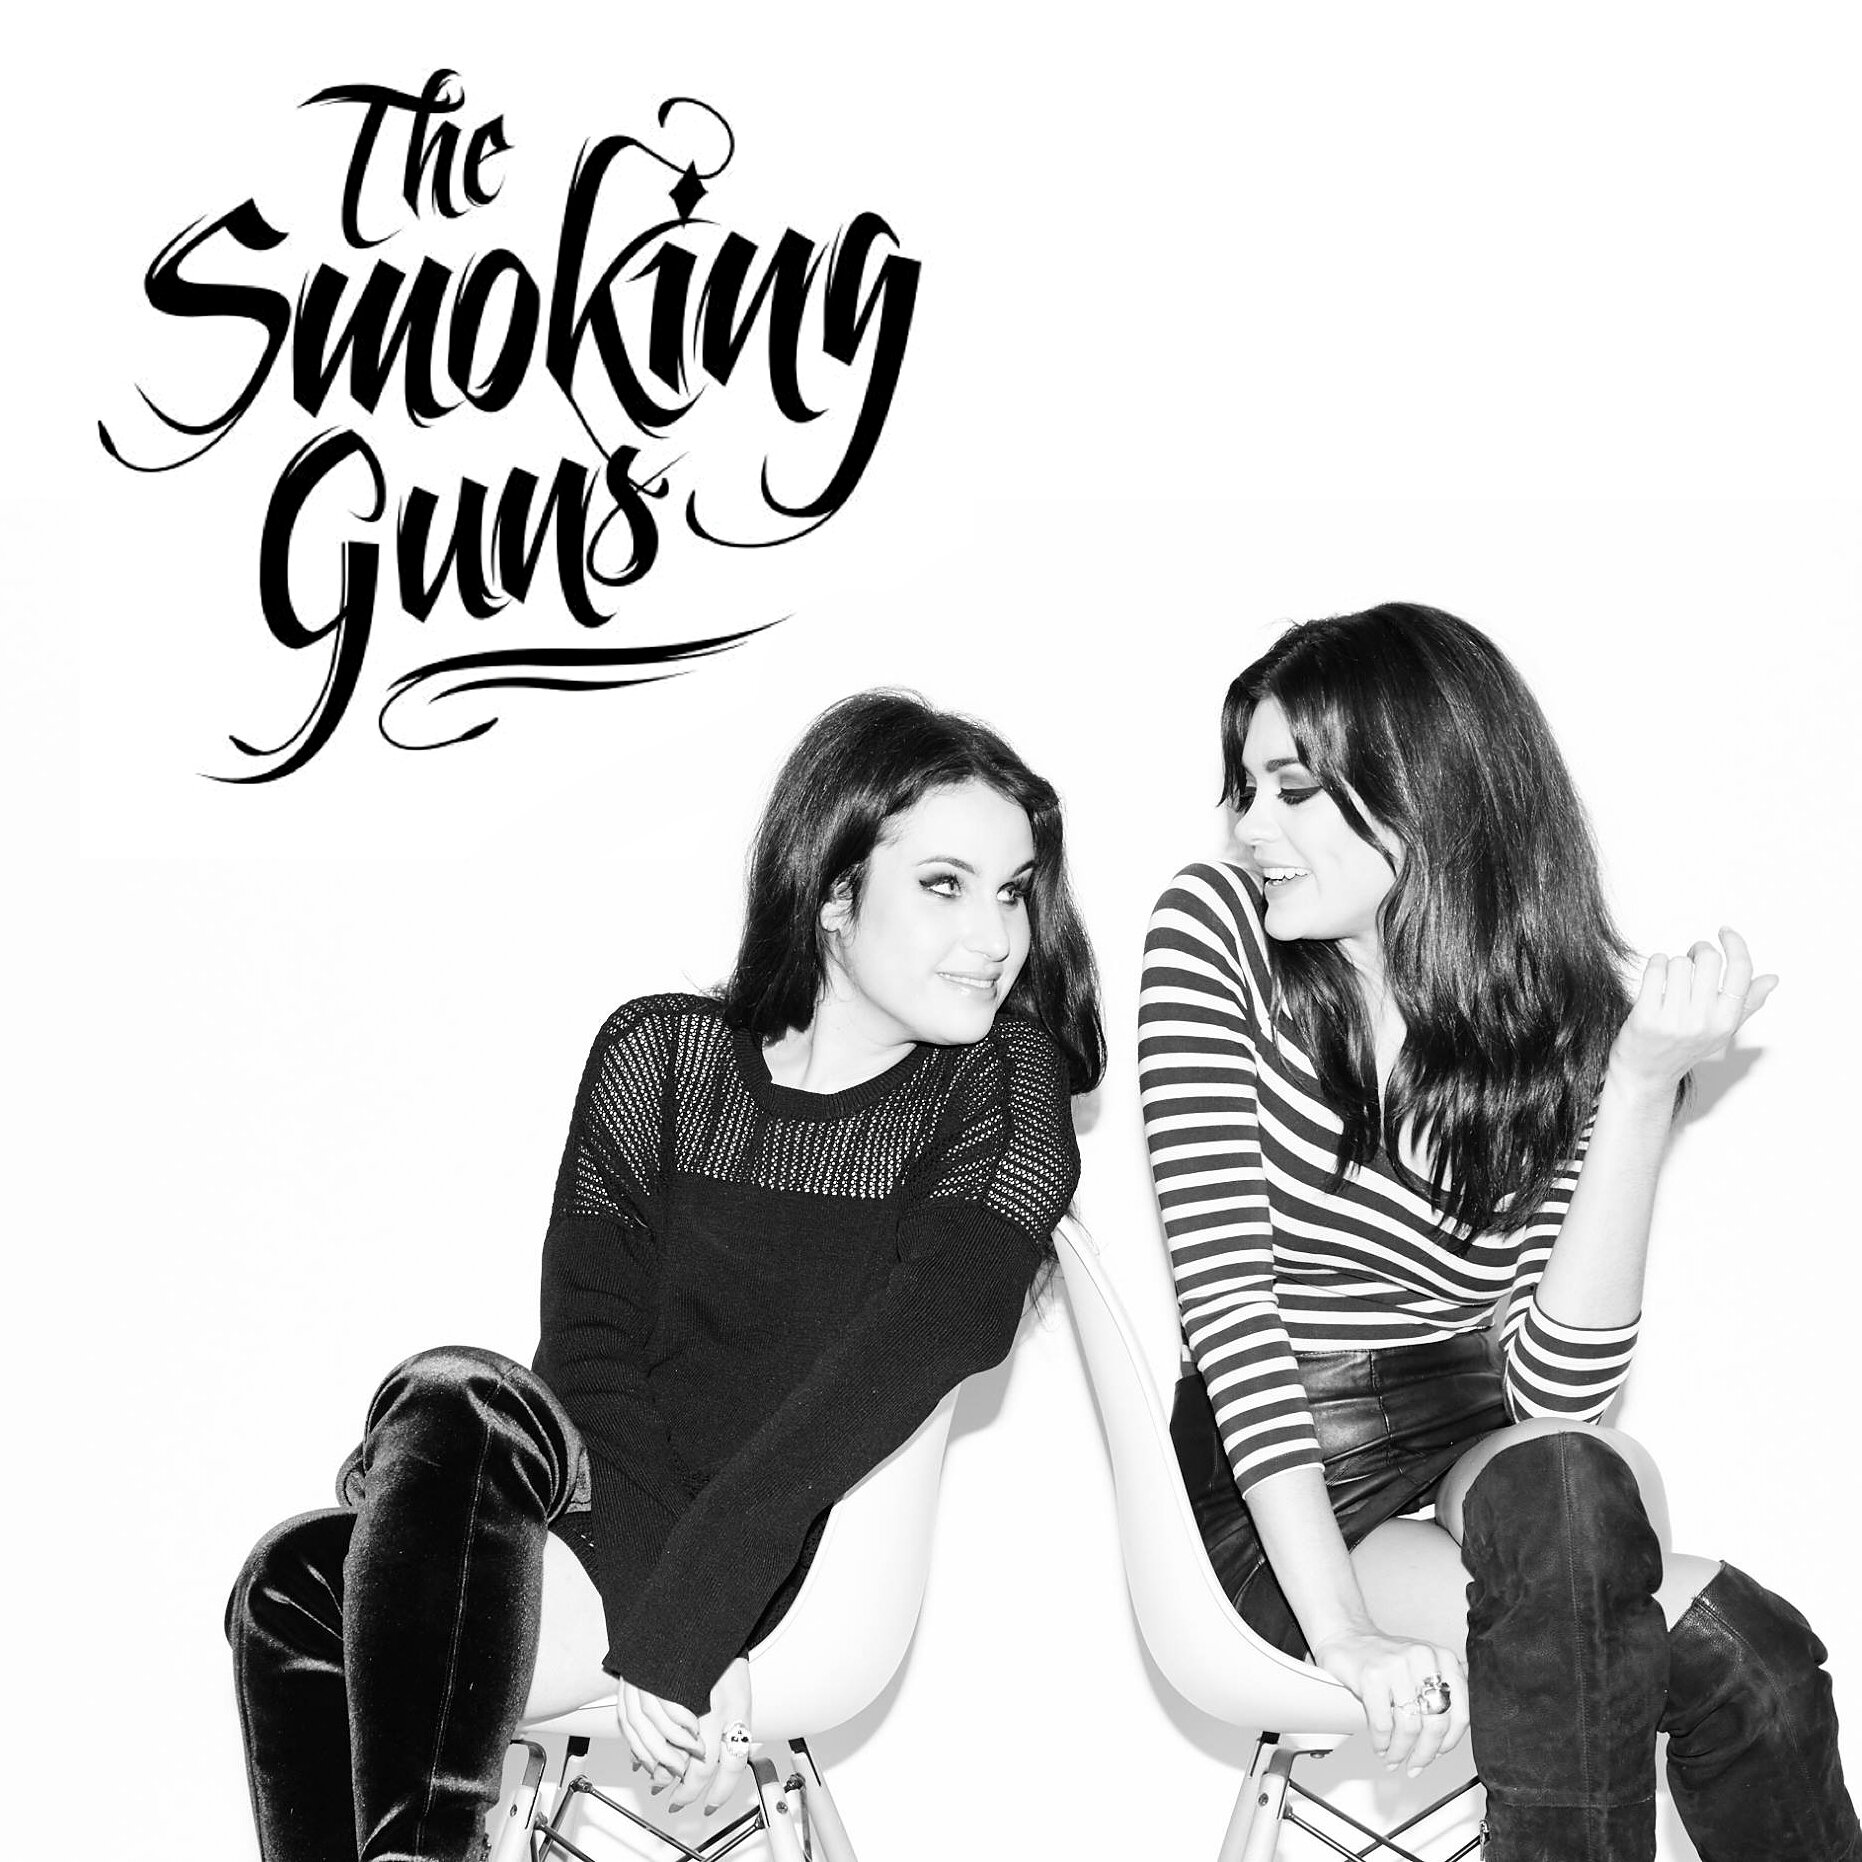 The Smoking Guns Dj's